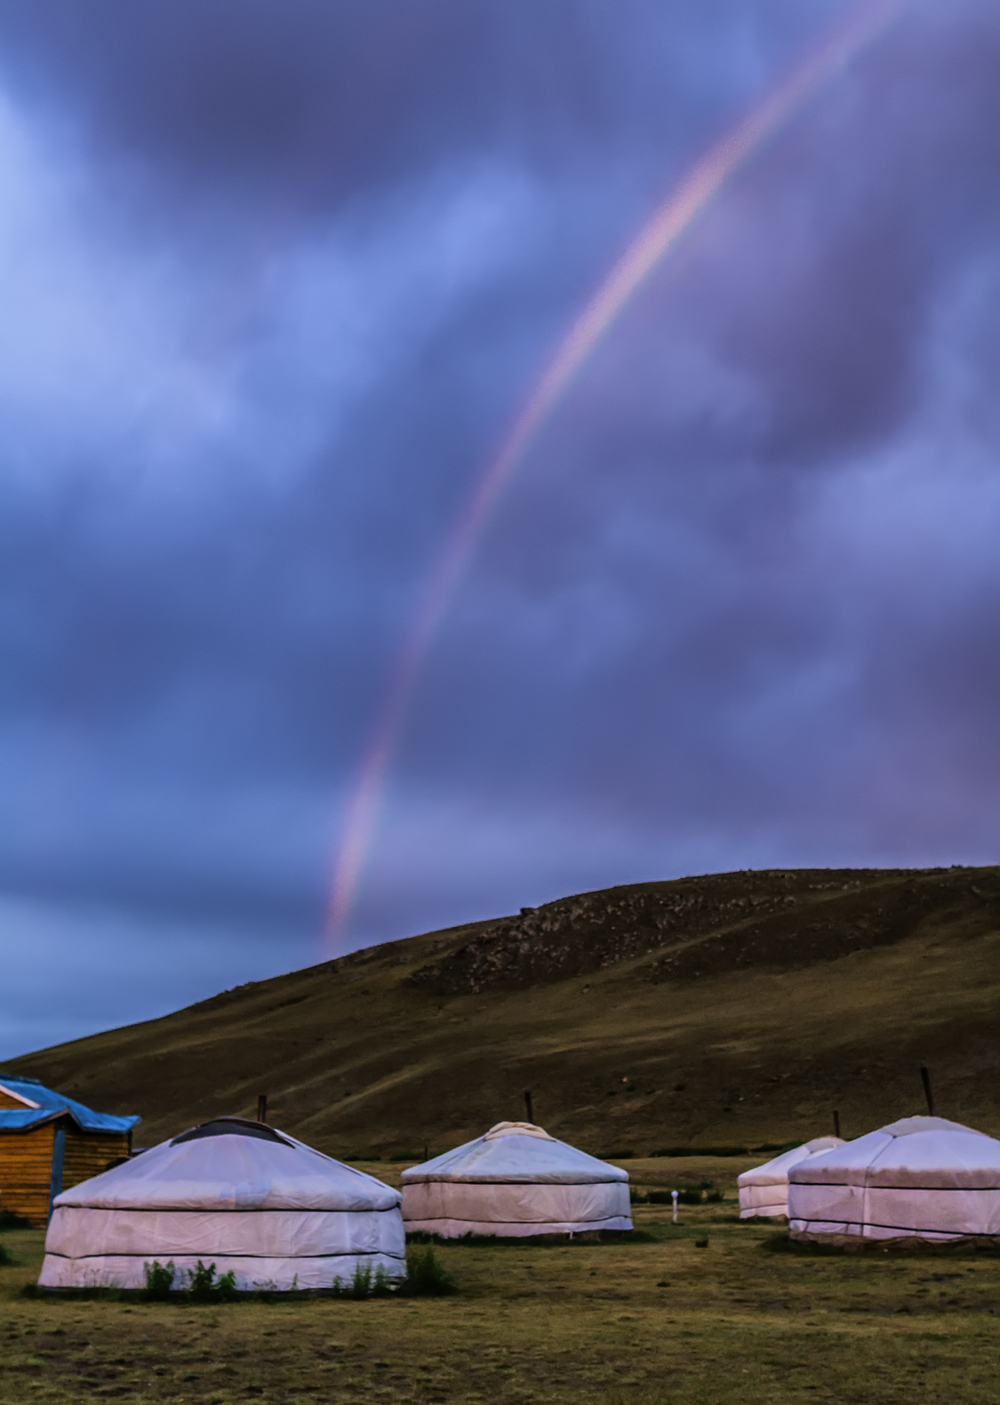 Rainbow Over Mongolian Gers